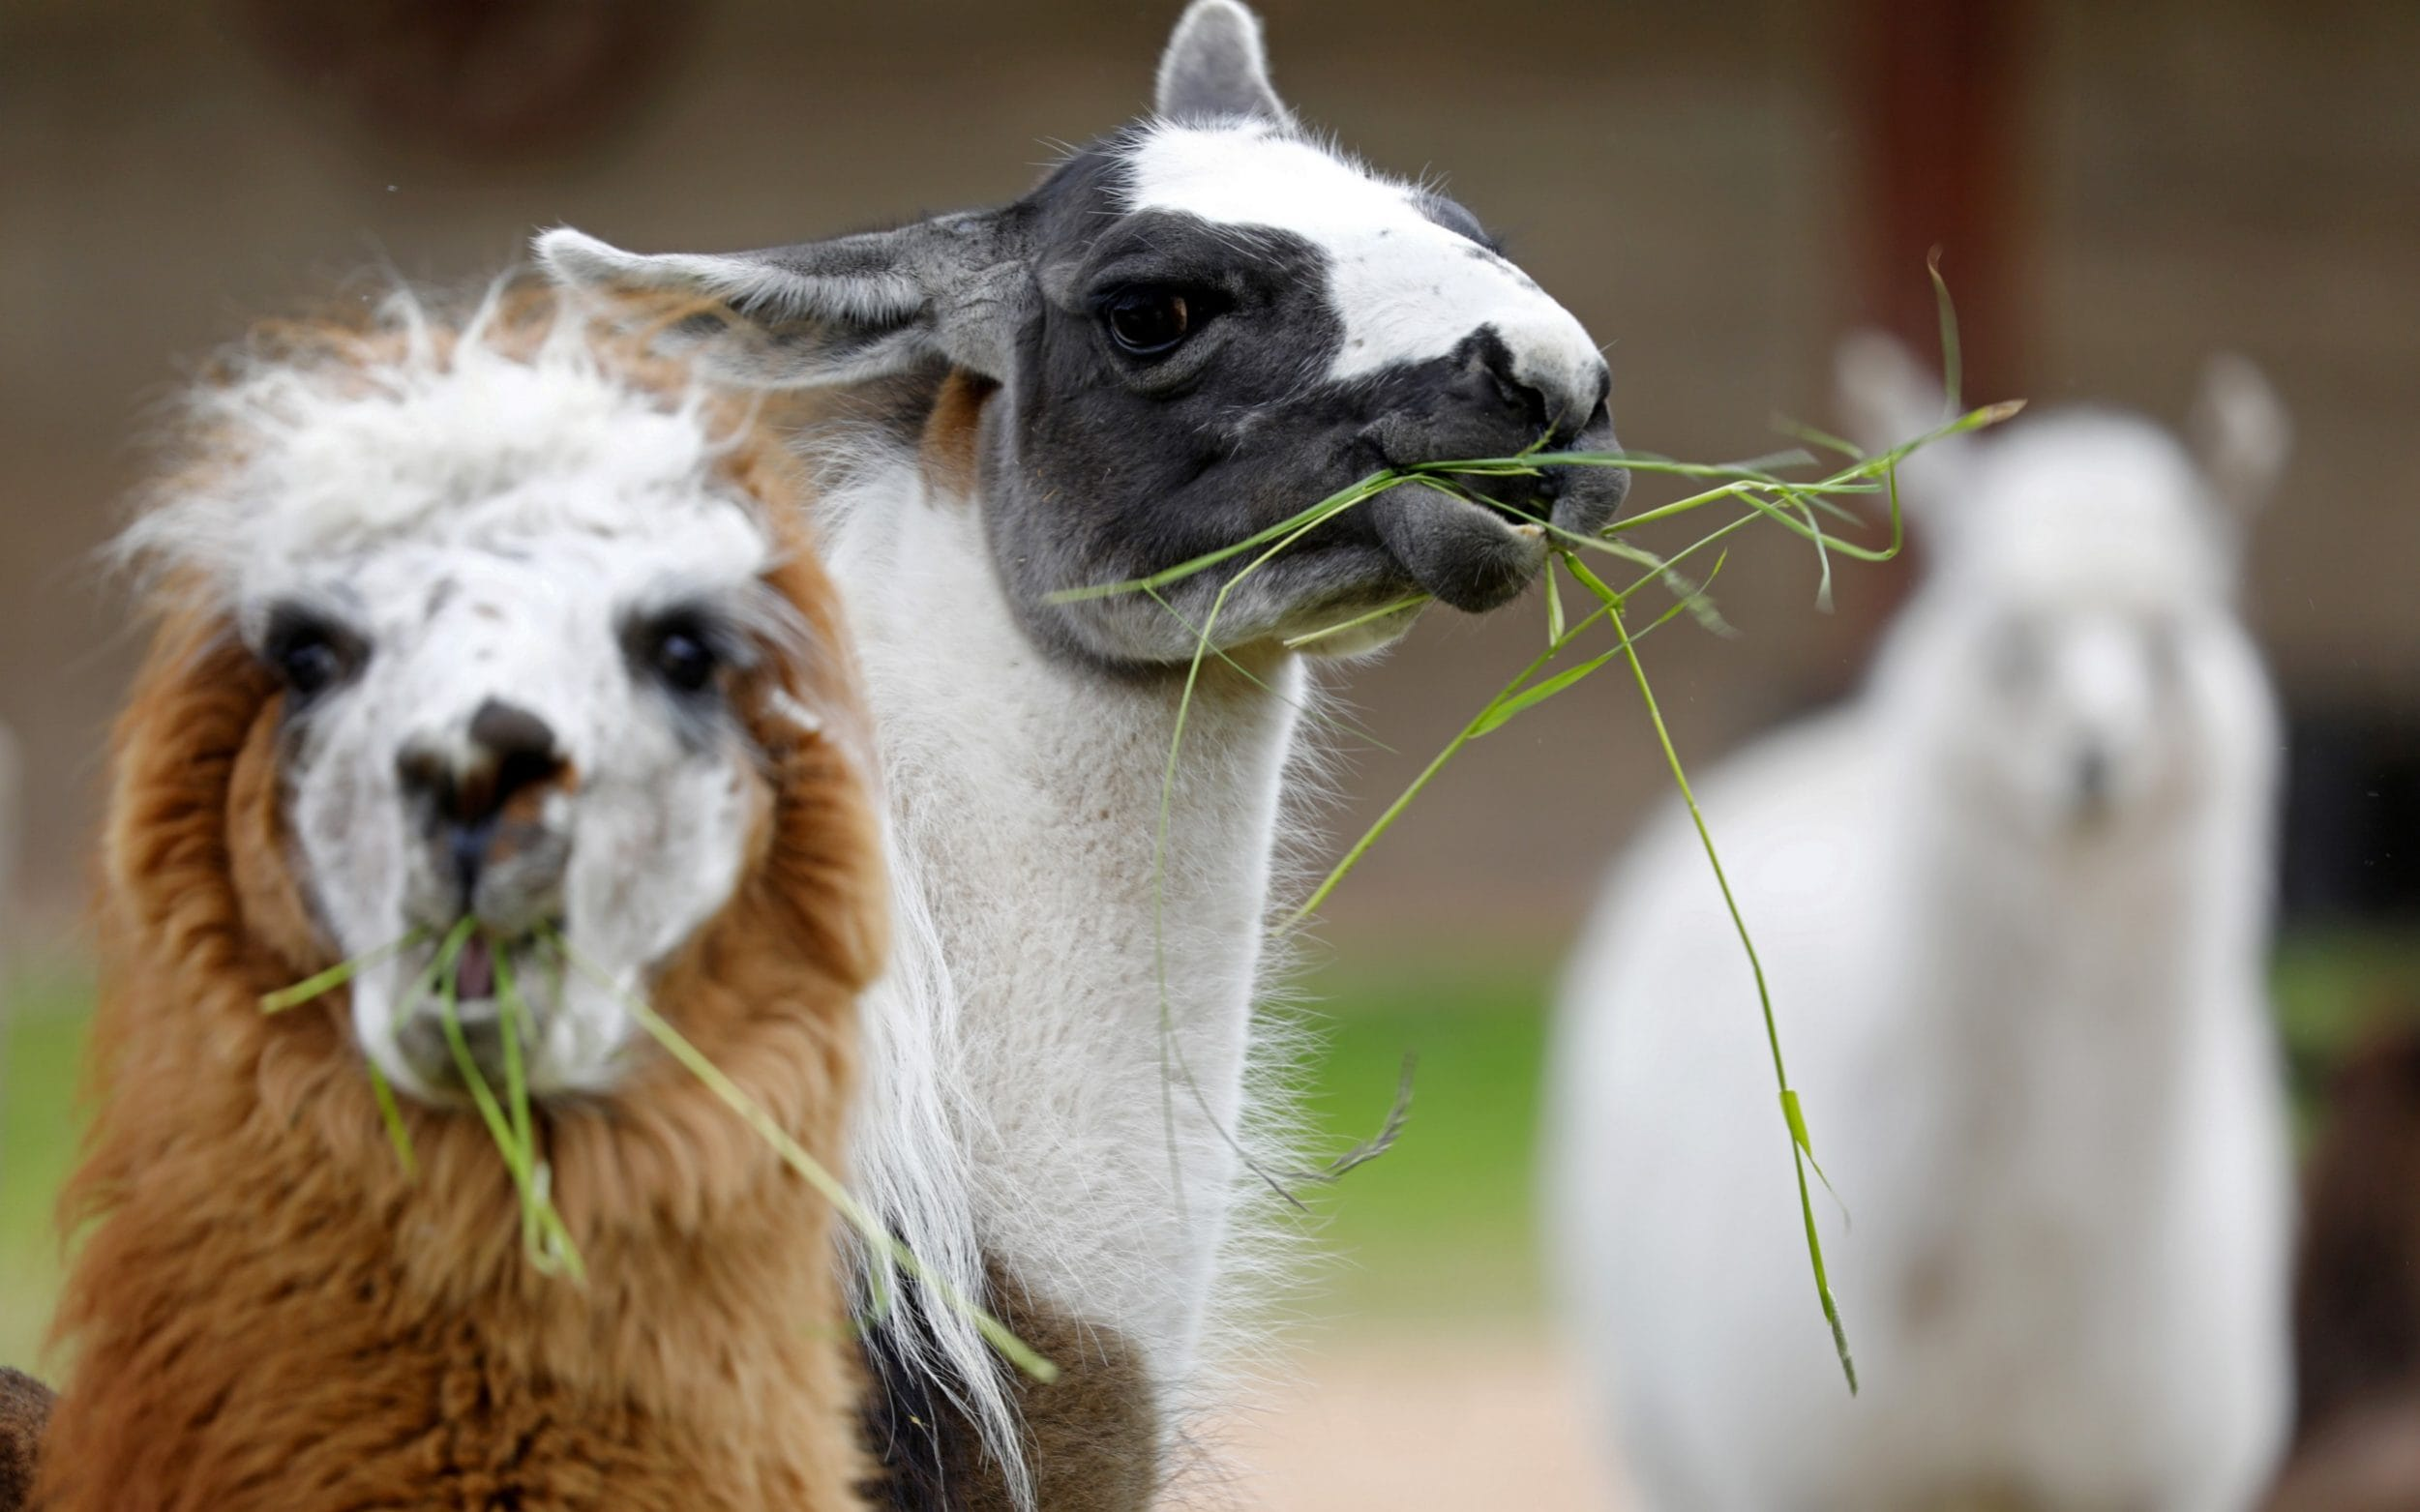 Researchers from Australia's nuclear science agency have revealed that the unique immune system of alpacas could hold the key to coronavirus breakthroughs. The Australian Nuclear Science and Technology Organisation (ANSTO) and Walter and Eliza Hall Institute (WEHI) said on Tuesday that they are studying alpaca antibodies in the search for therapies for COVID-19. By immunising […]